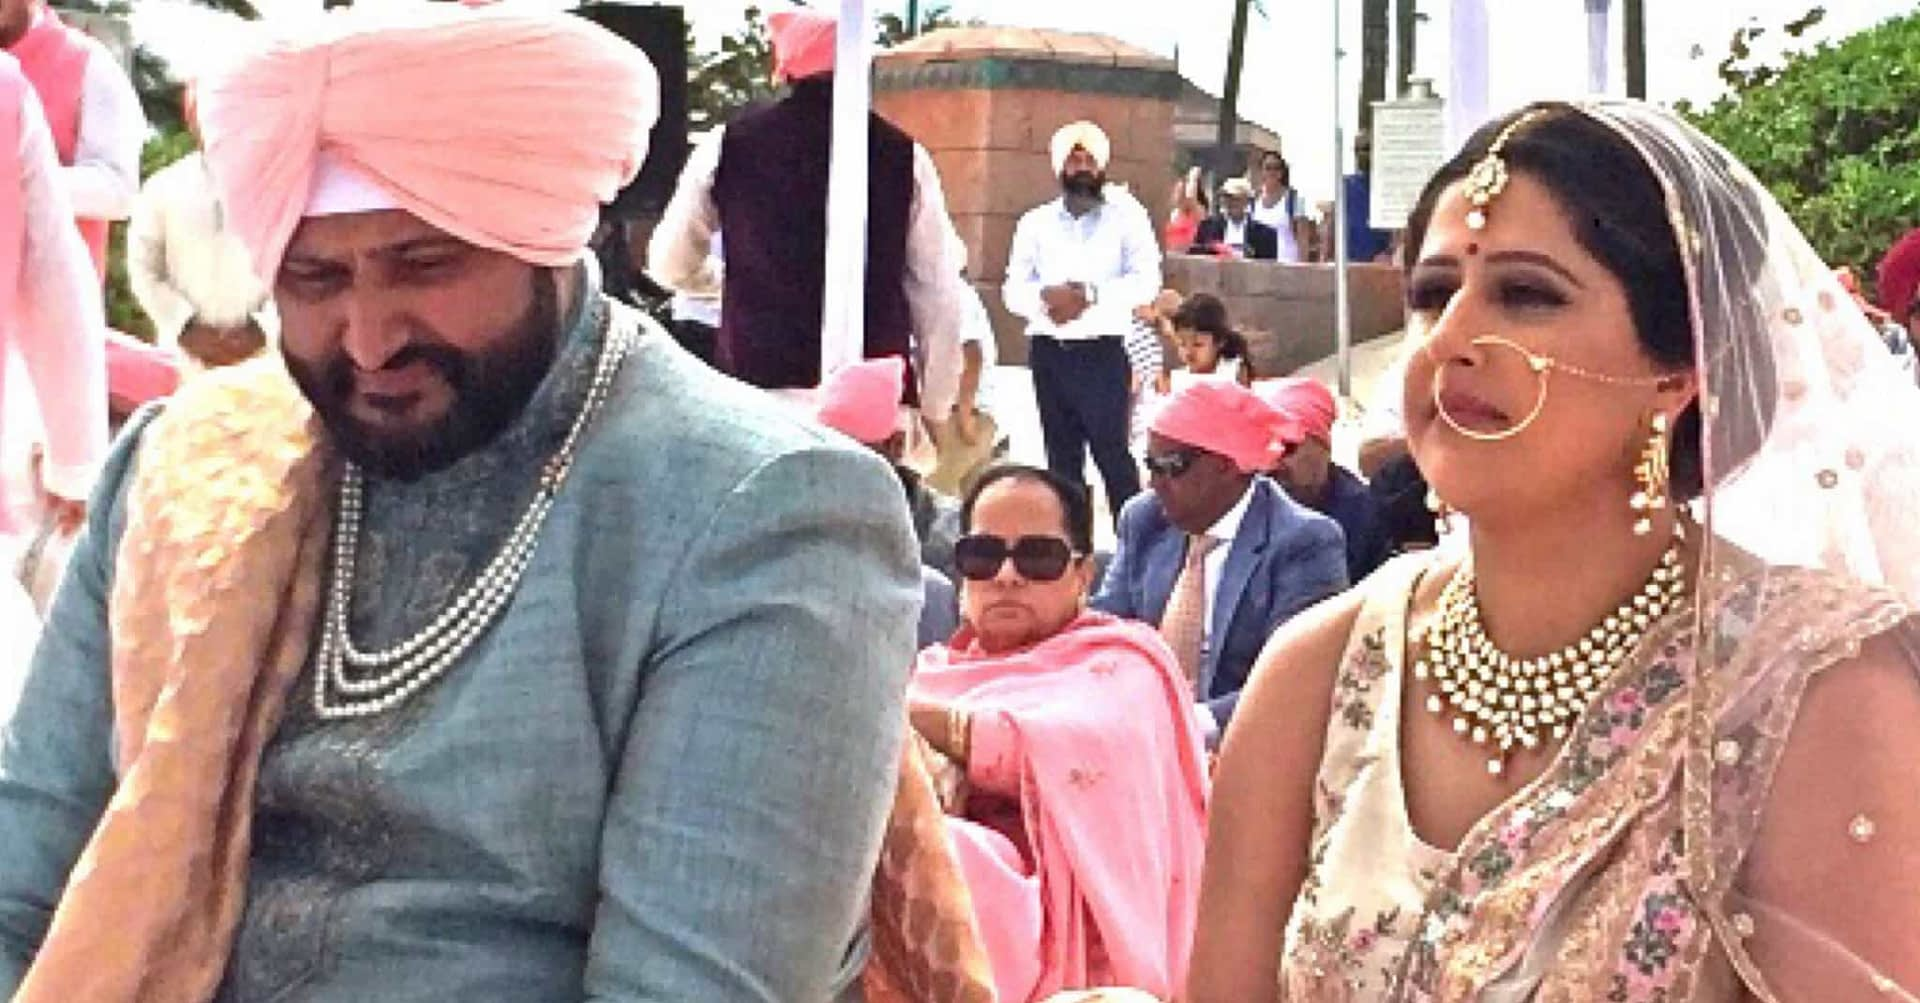 Sikh Wedding Officiant